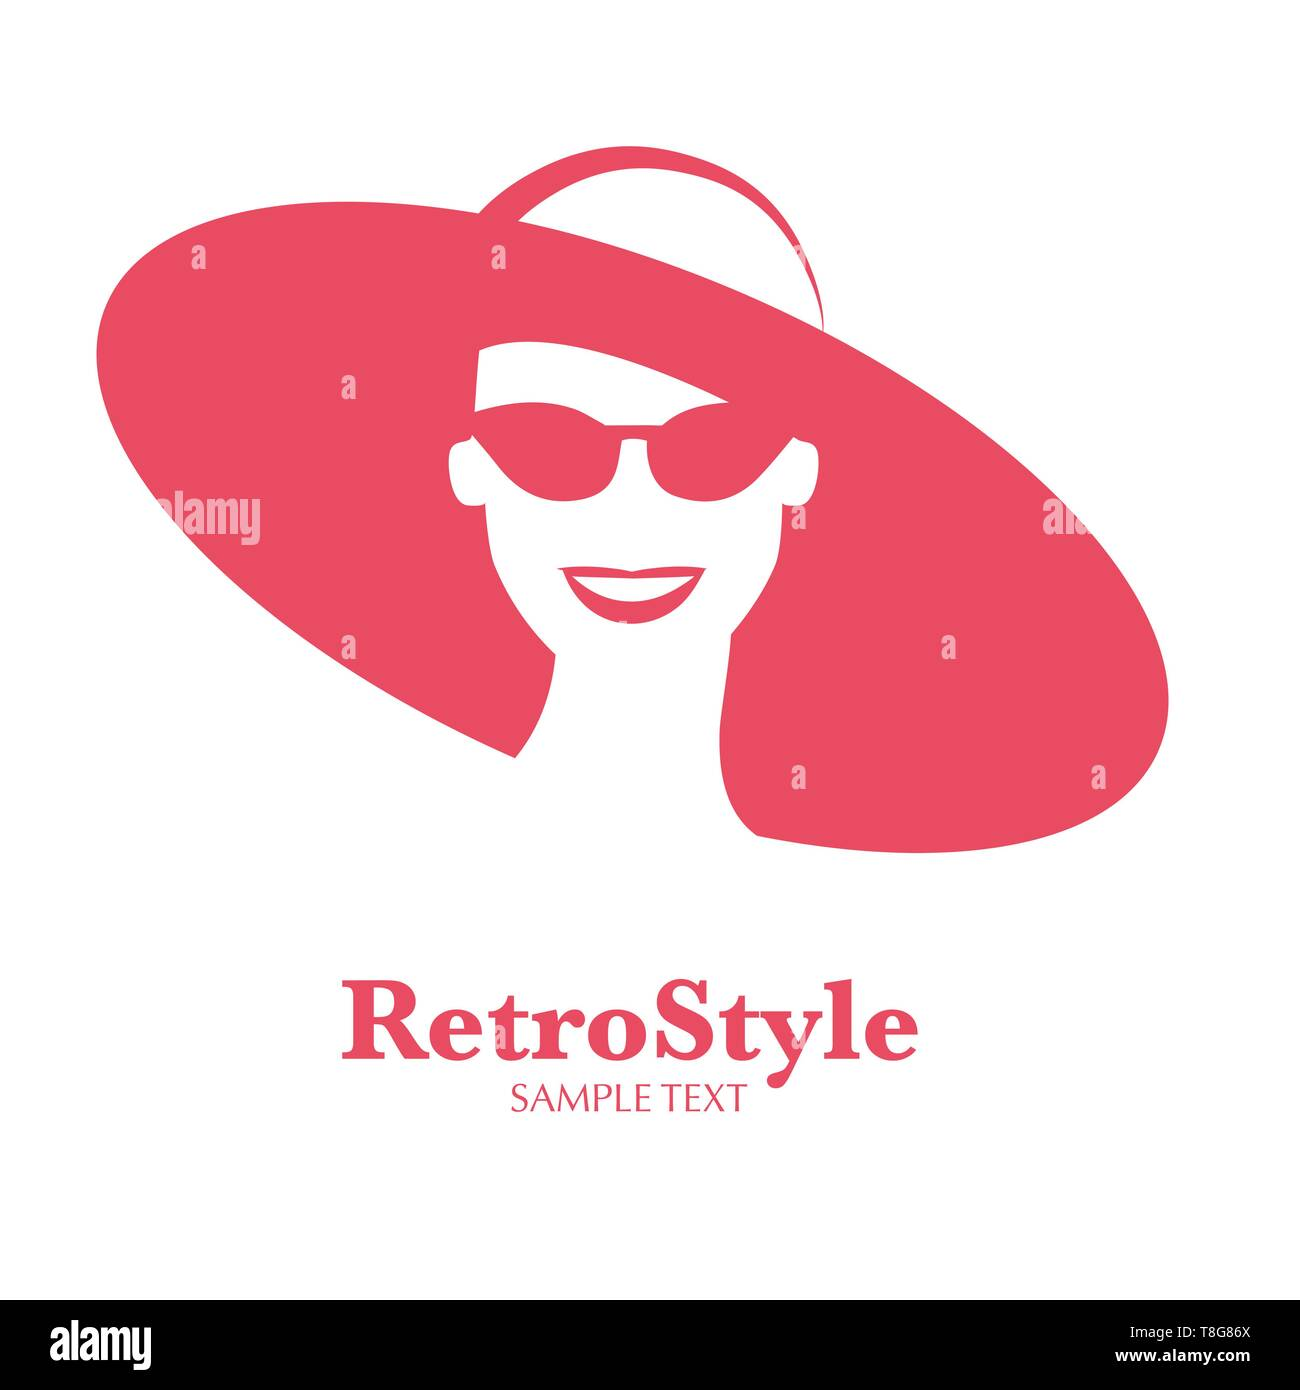 Icon or avatar of smiling woman with hat and sunglasses retro style